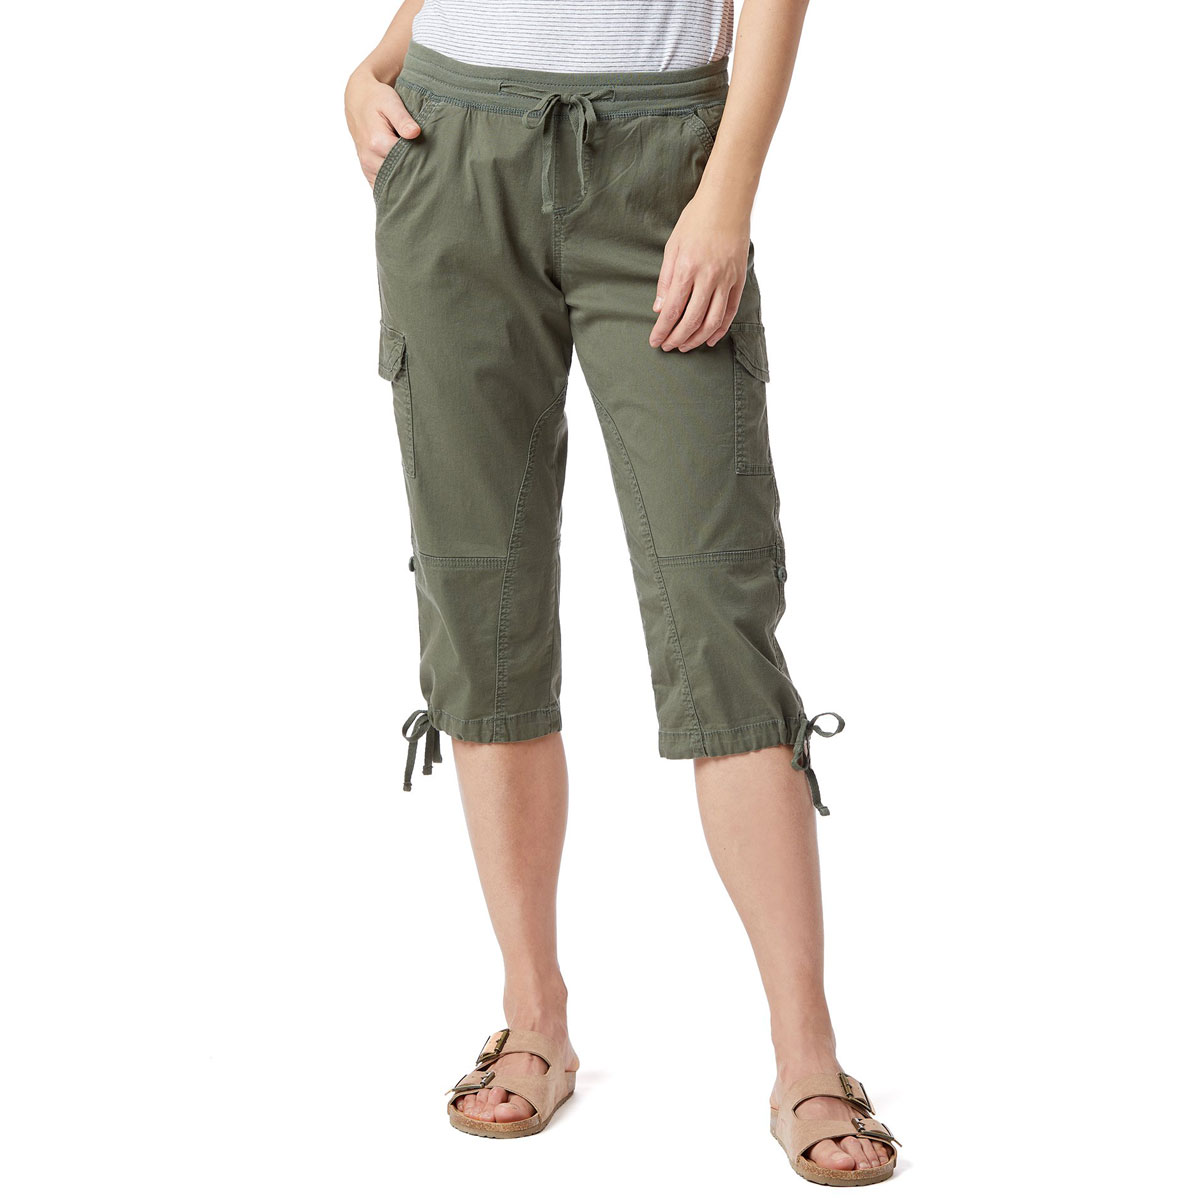 Unionbay Women's Devora Convertible Skimmer Crop Pants - Green, 14